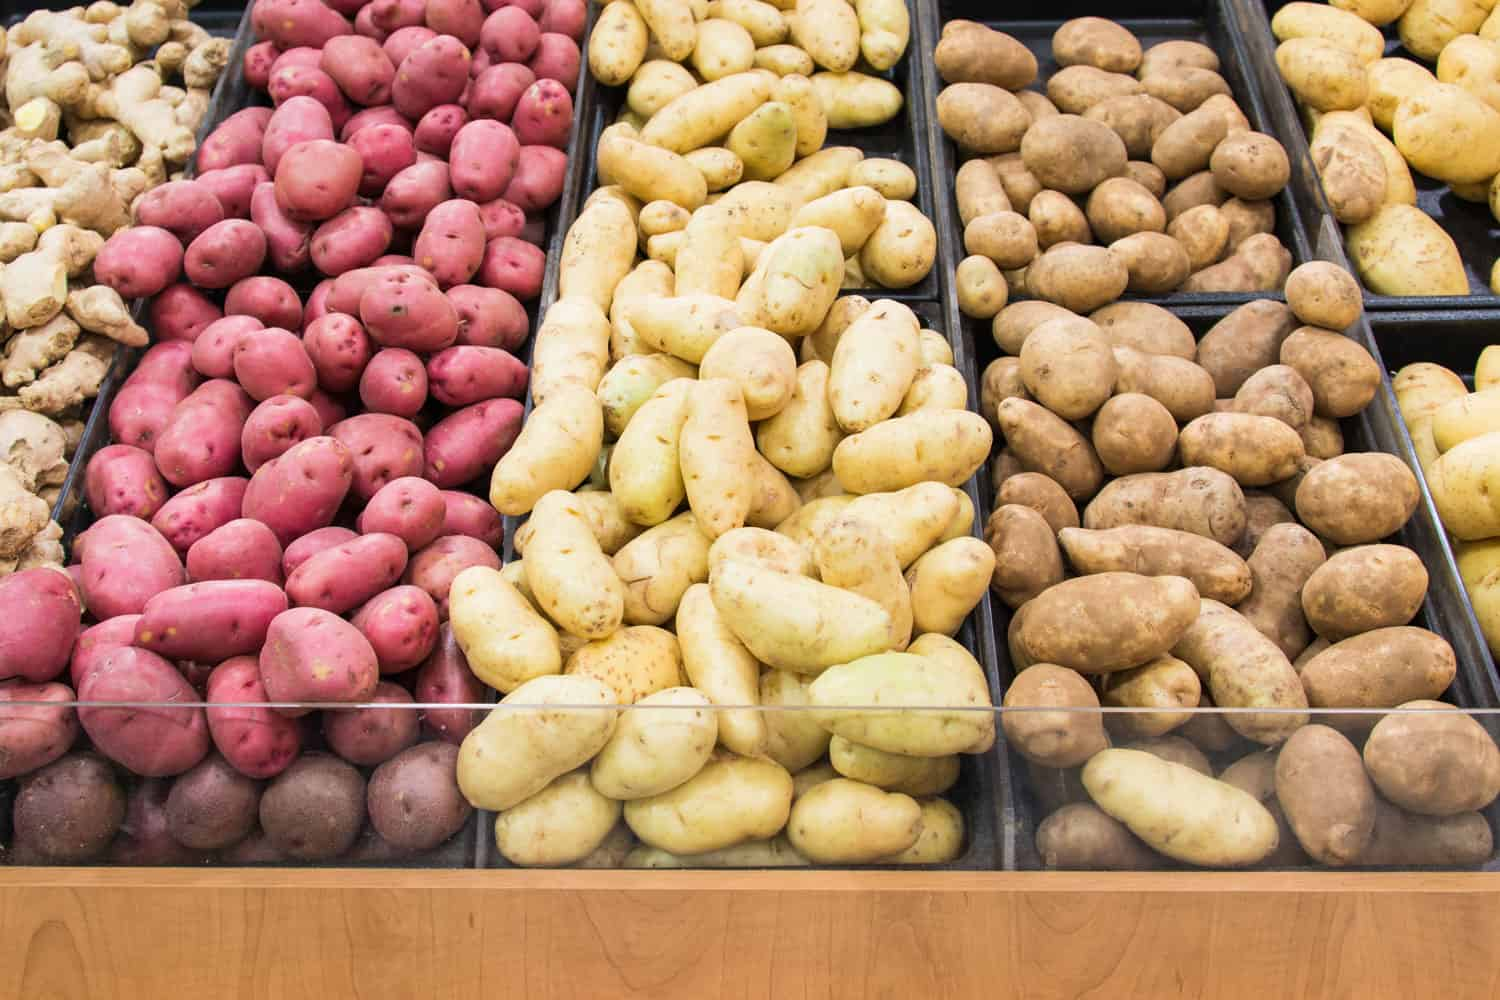 Different varieties of potatoes on vegetable trays